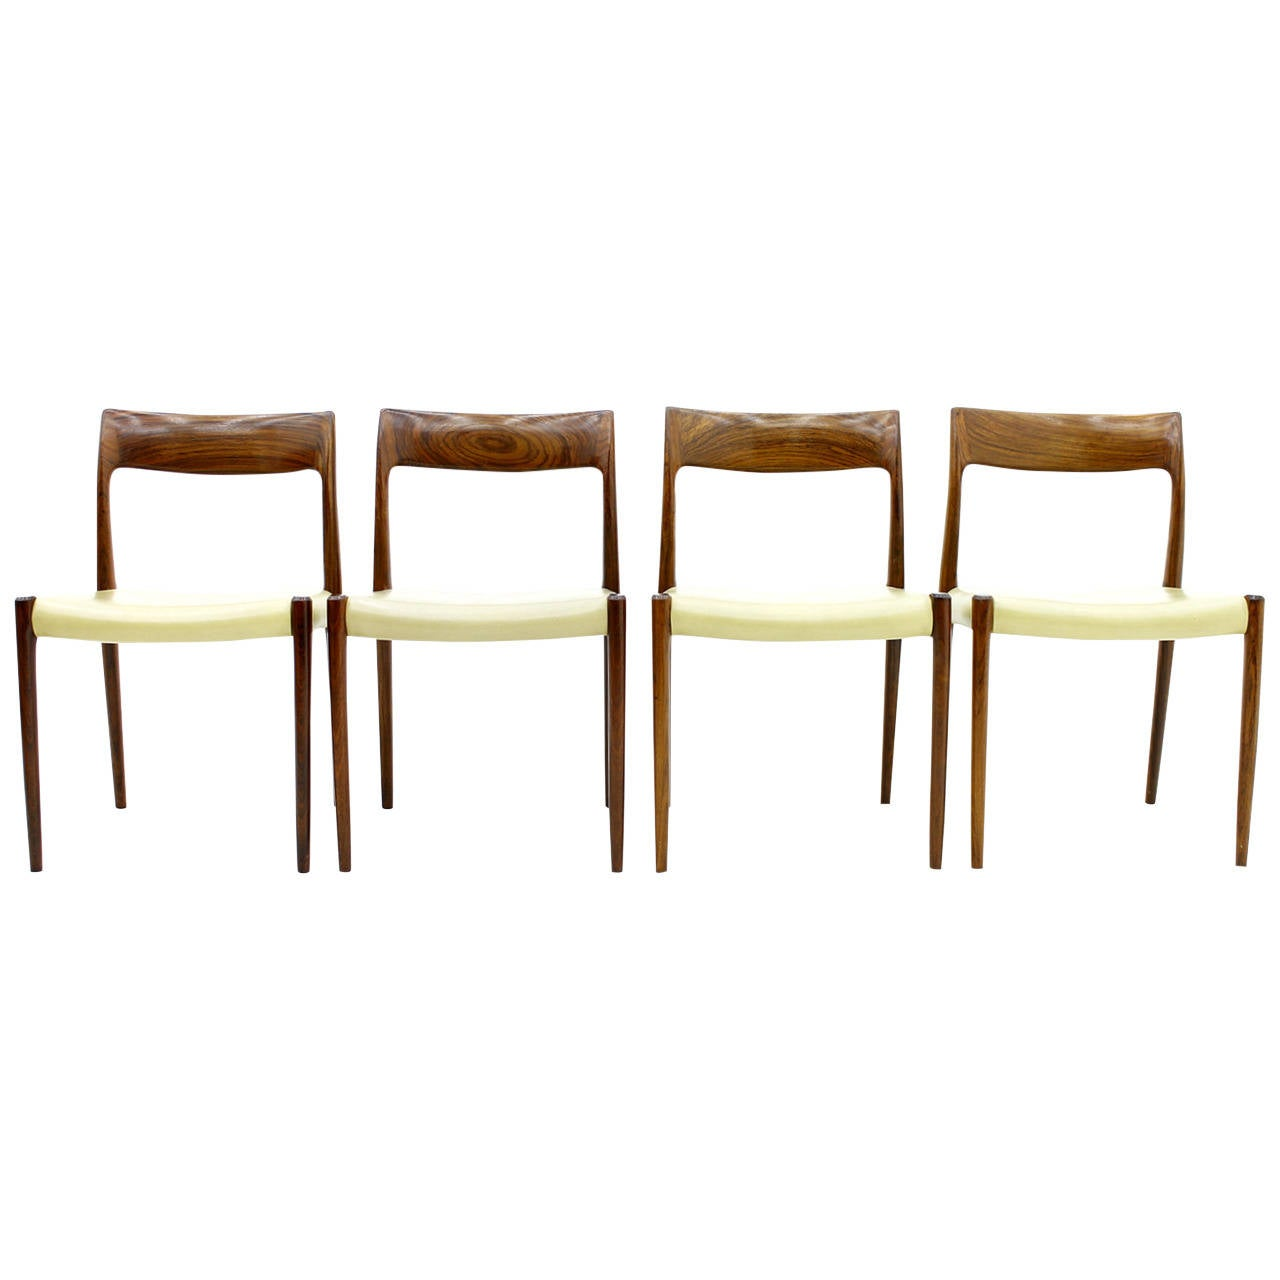 Four Rosewood And Leather Dining Room Chairs By Niels O